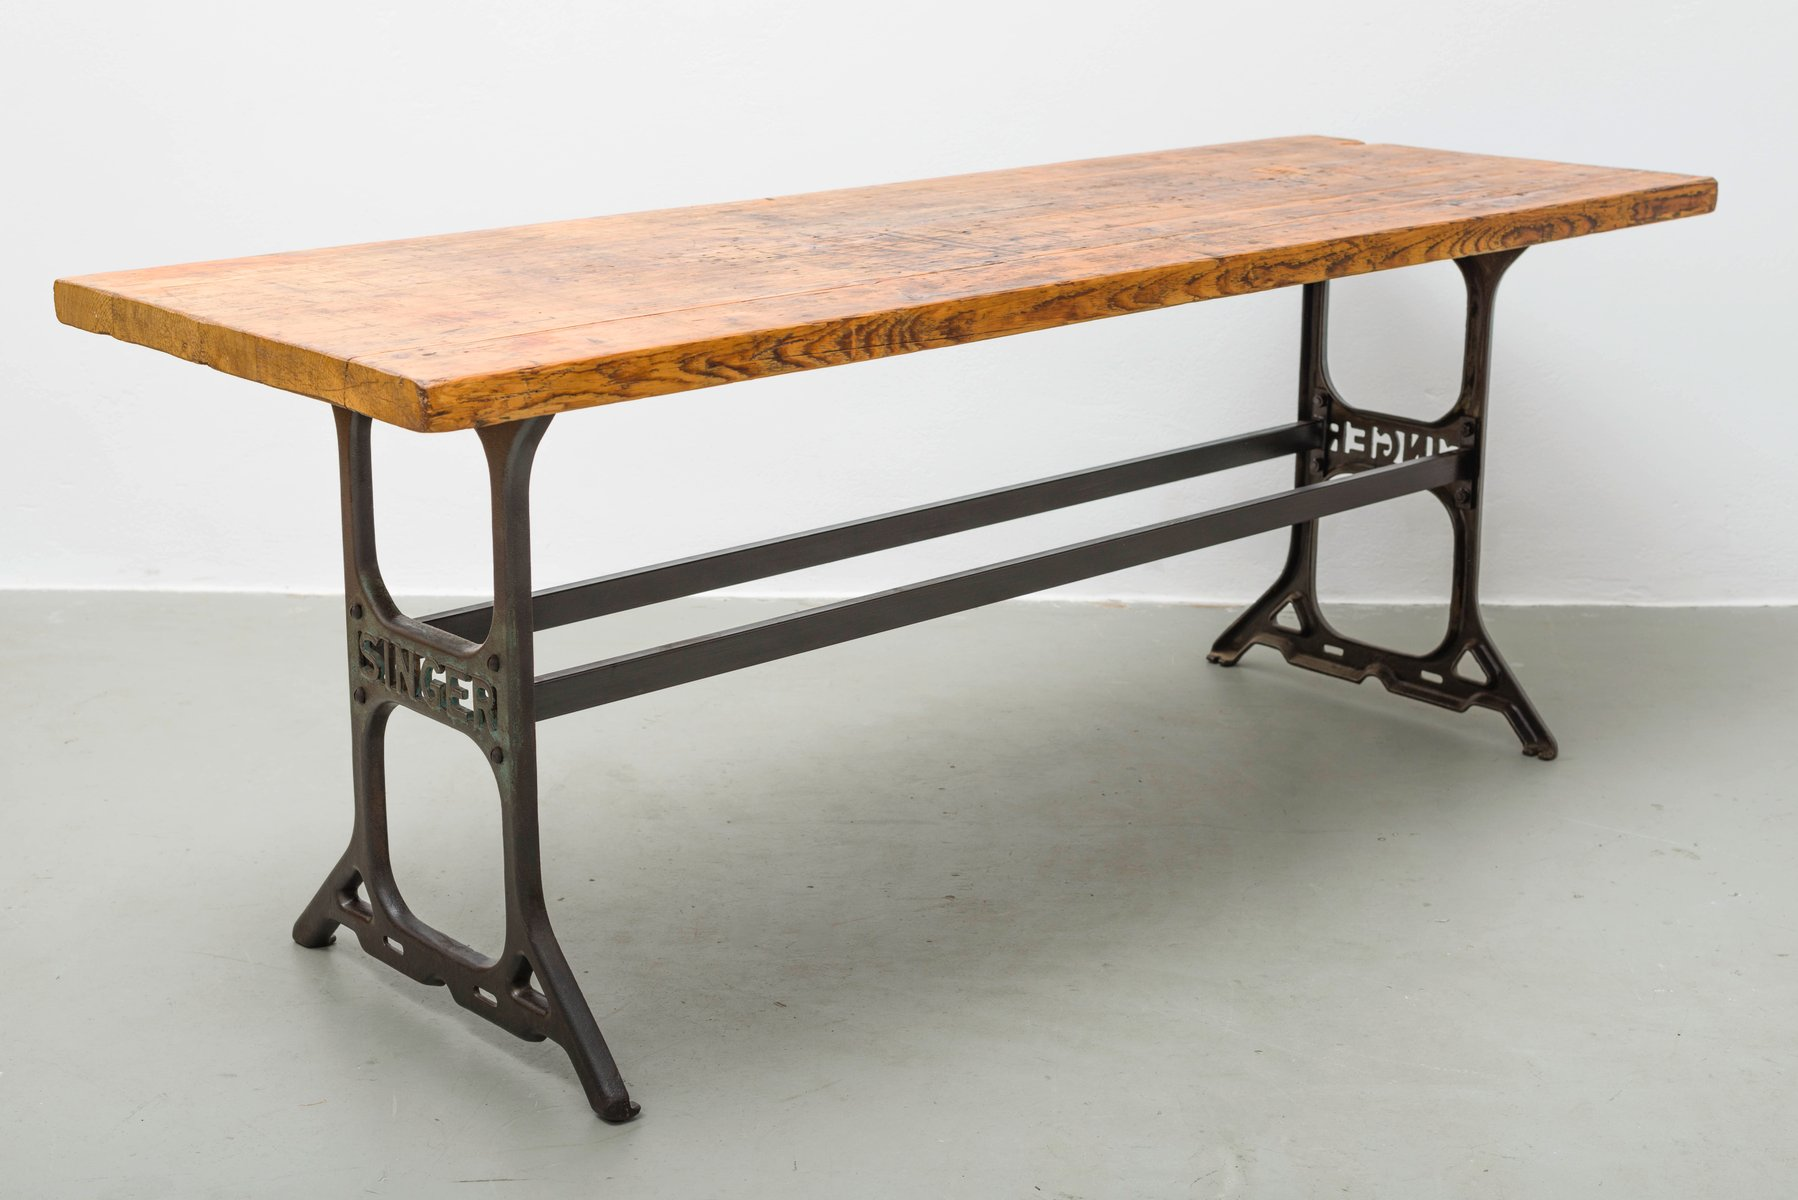 Table de salle manger industrielle r publique tch que for Table de salle a manger originale